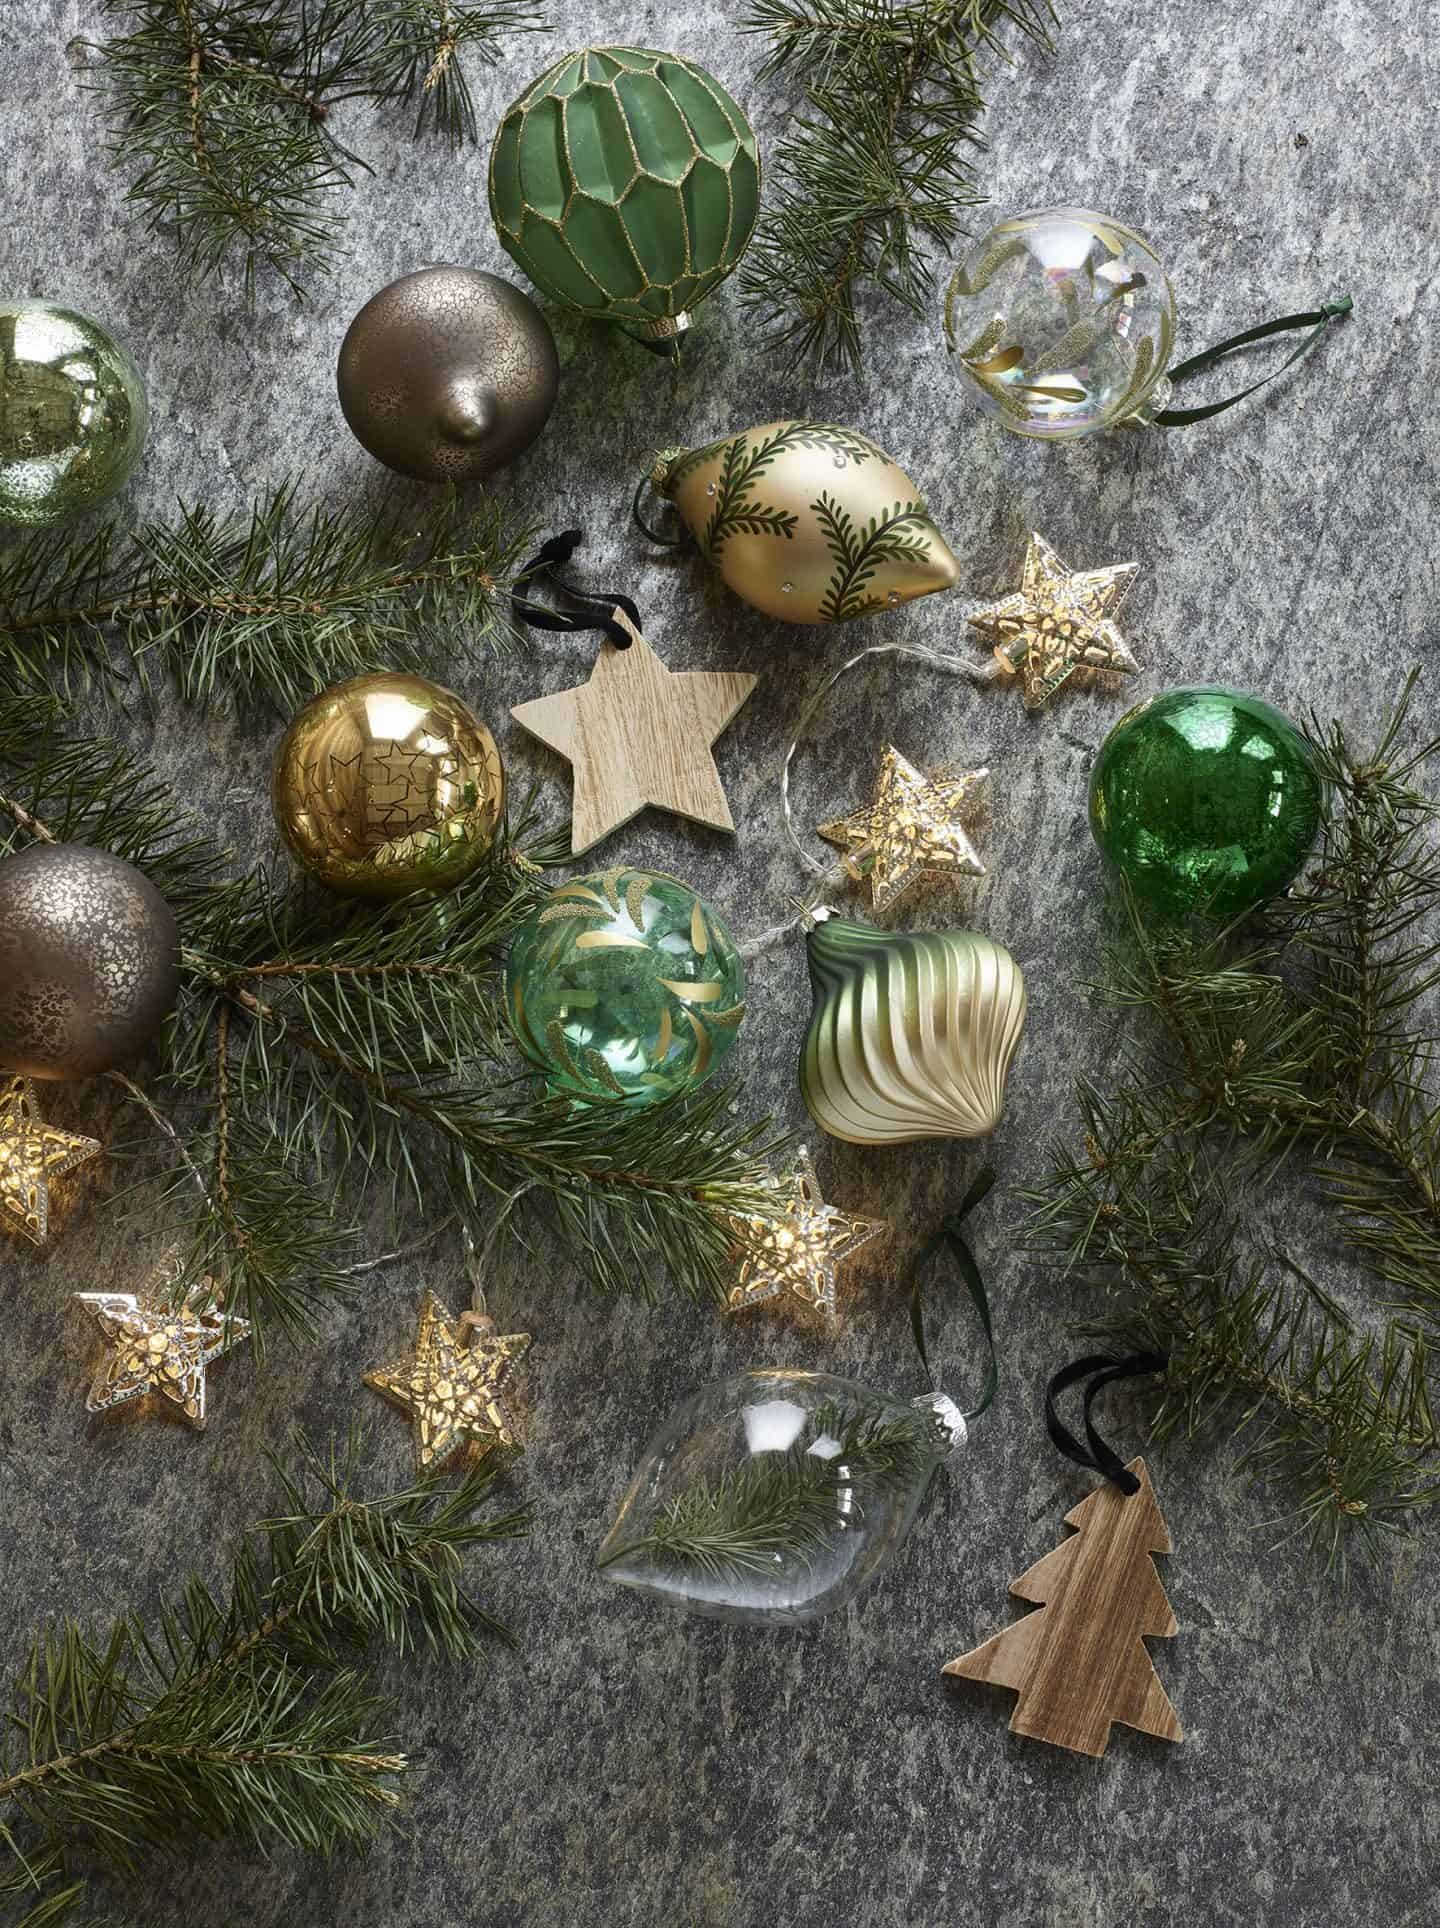 Dobbies Selection of Enchanted Garden Christmas Trend - Baubles